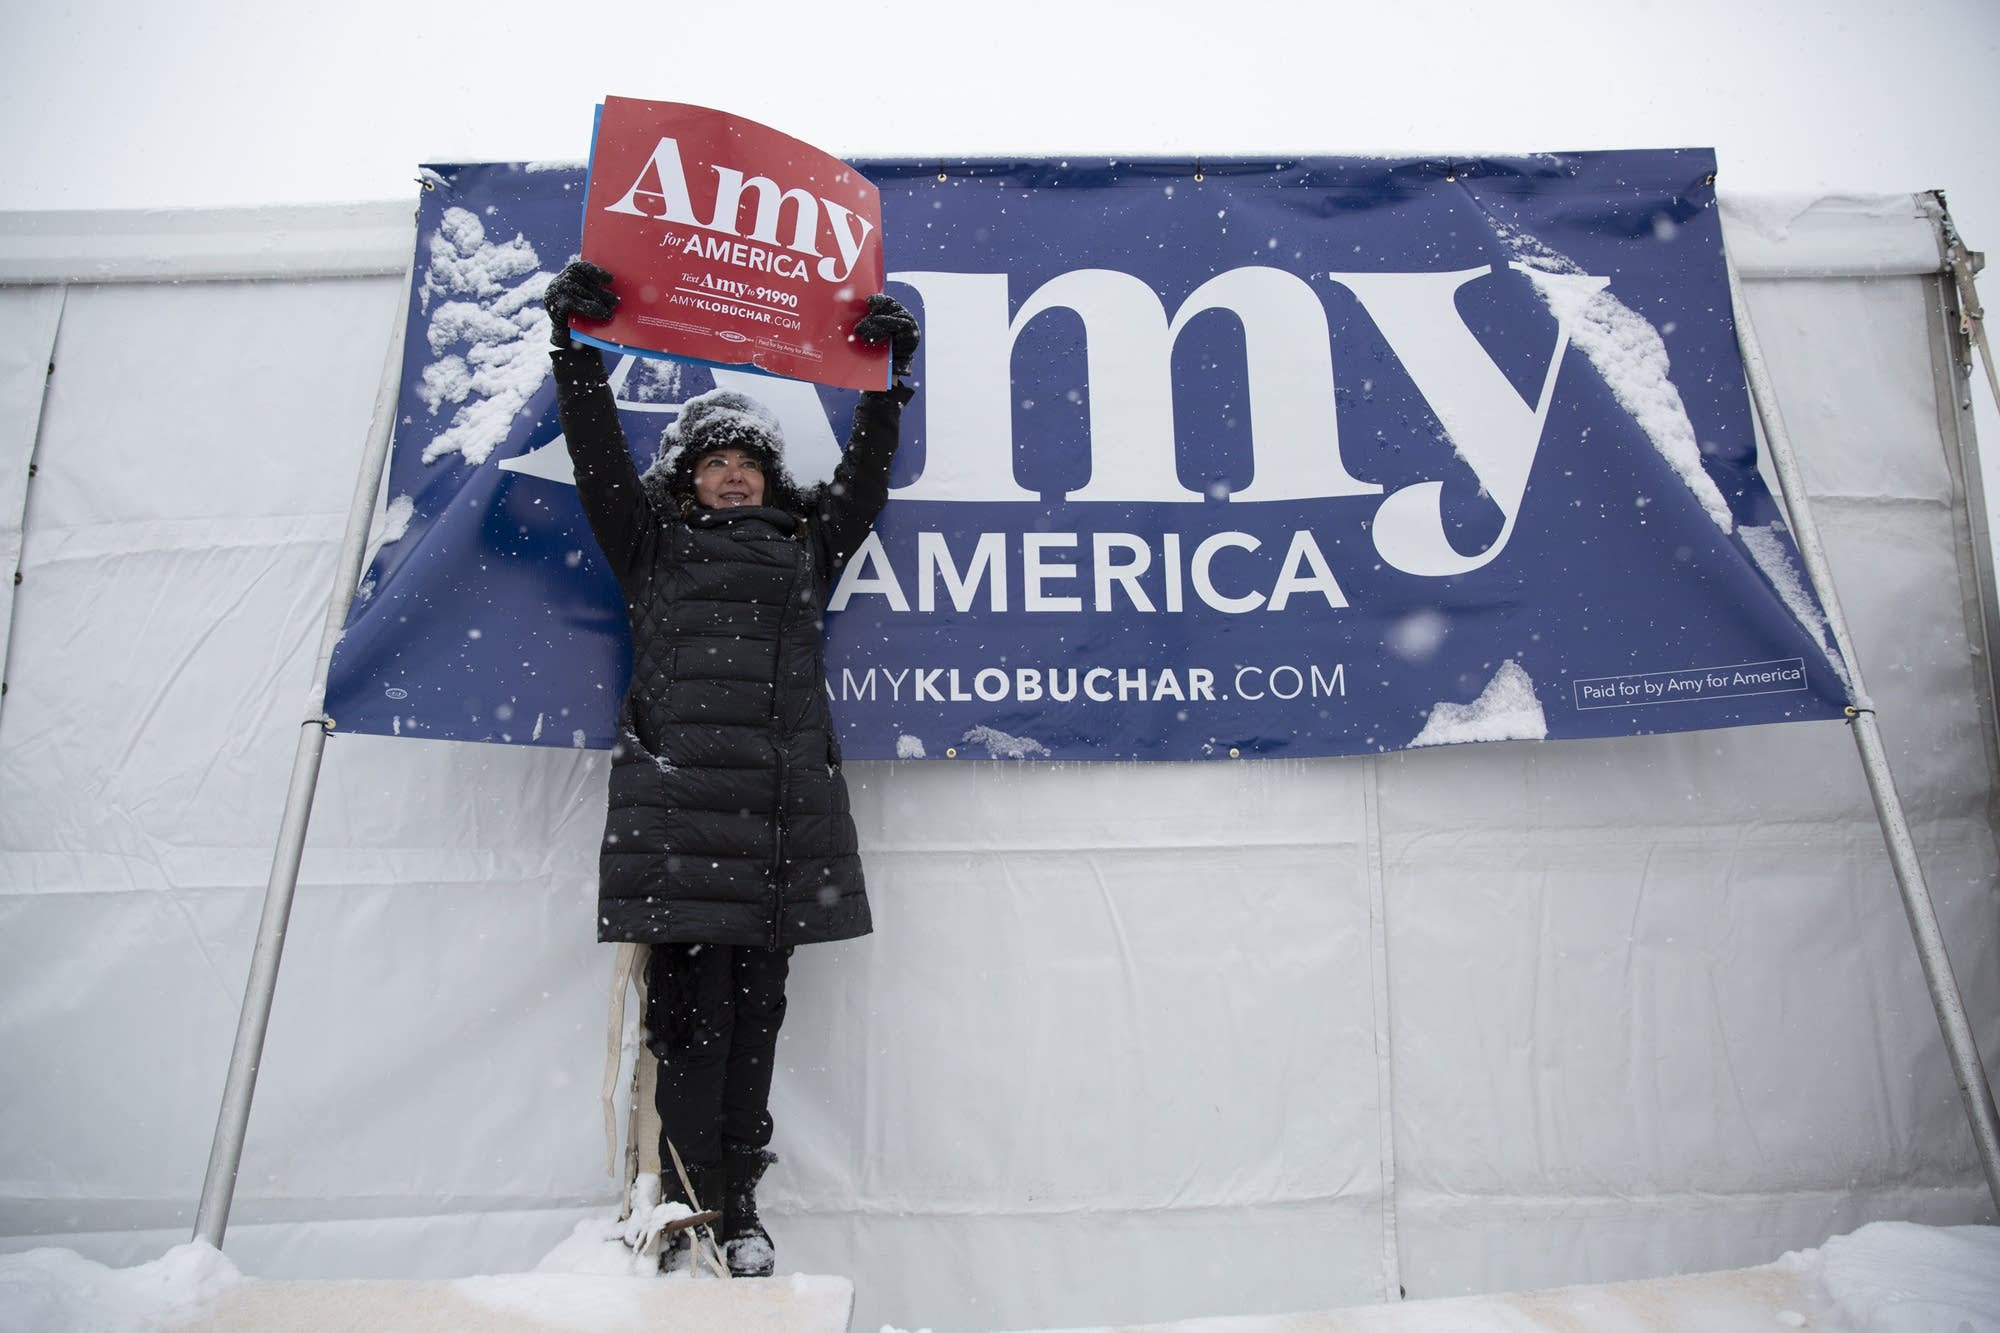 Jenifer Robins stands on a table to get a view during a rally.